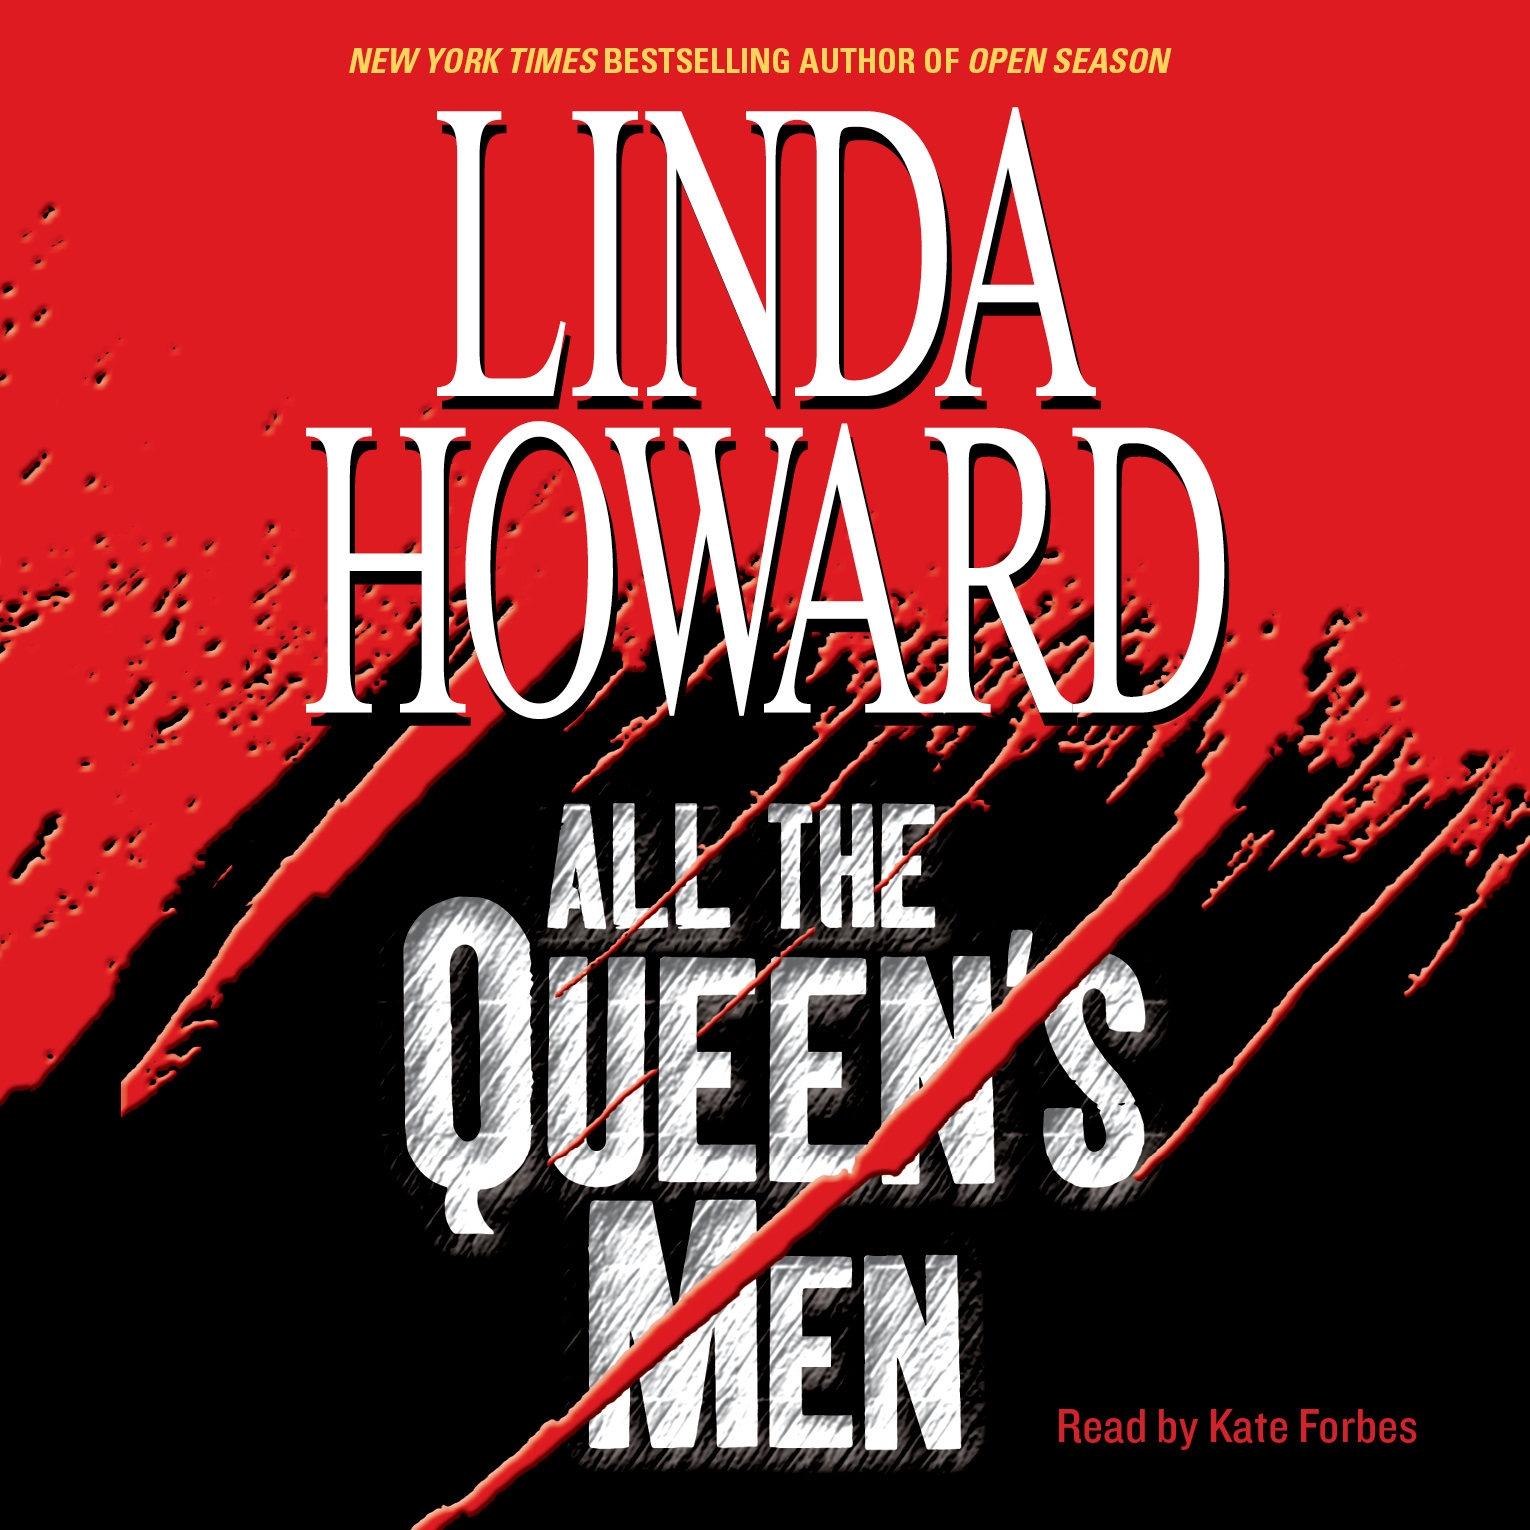 All The Queens Men Audiobook By Linda Howard Kate Forbes